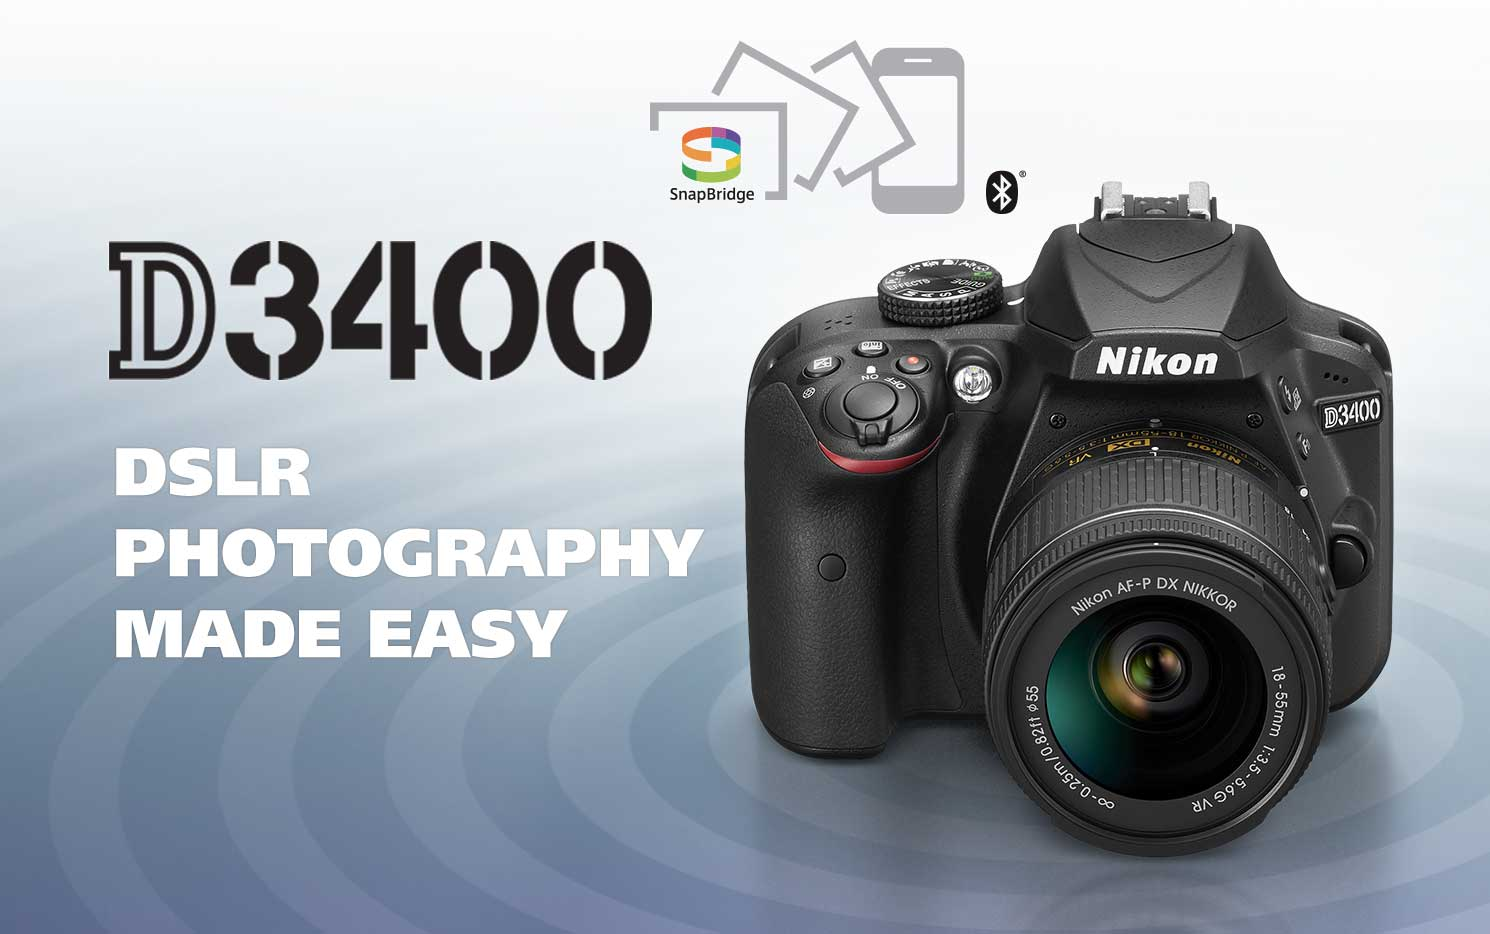 Learn more about the D3400